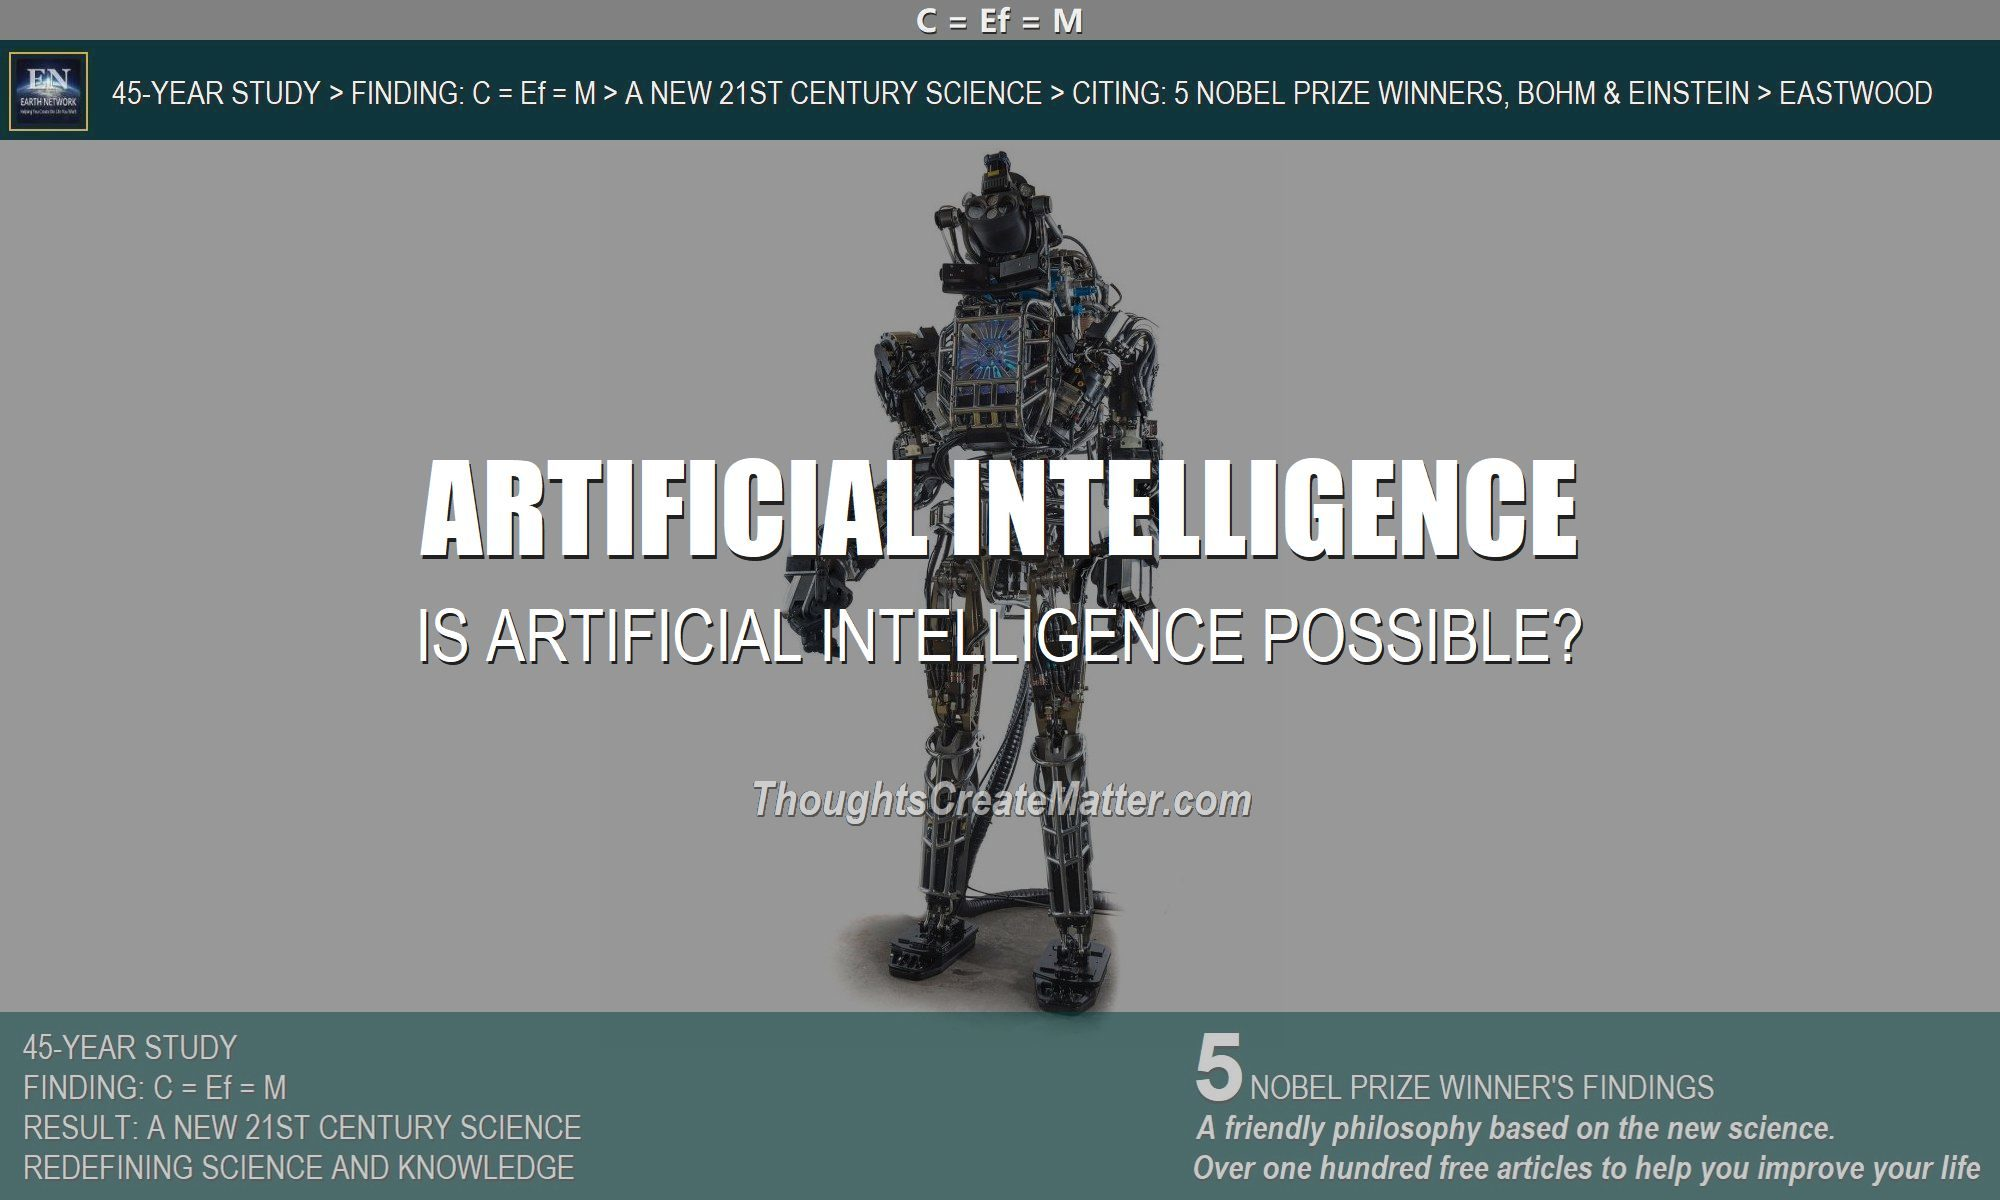 Robot depicts question is artificial intelligence possible?